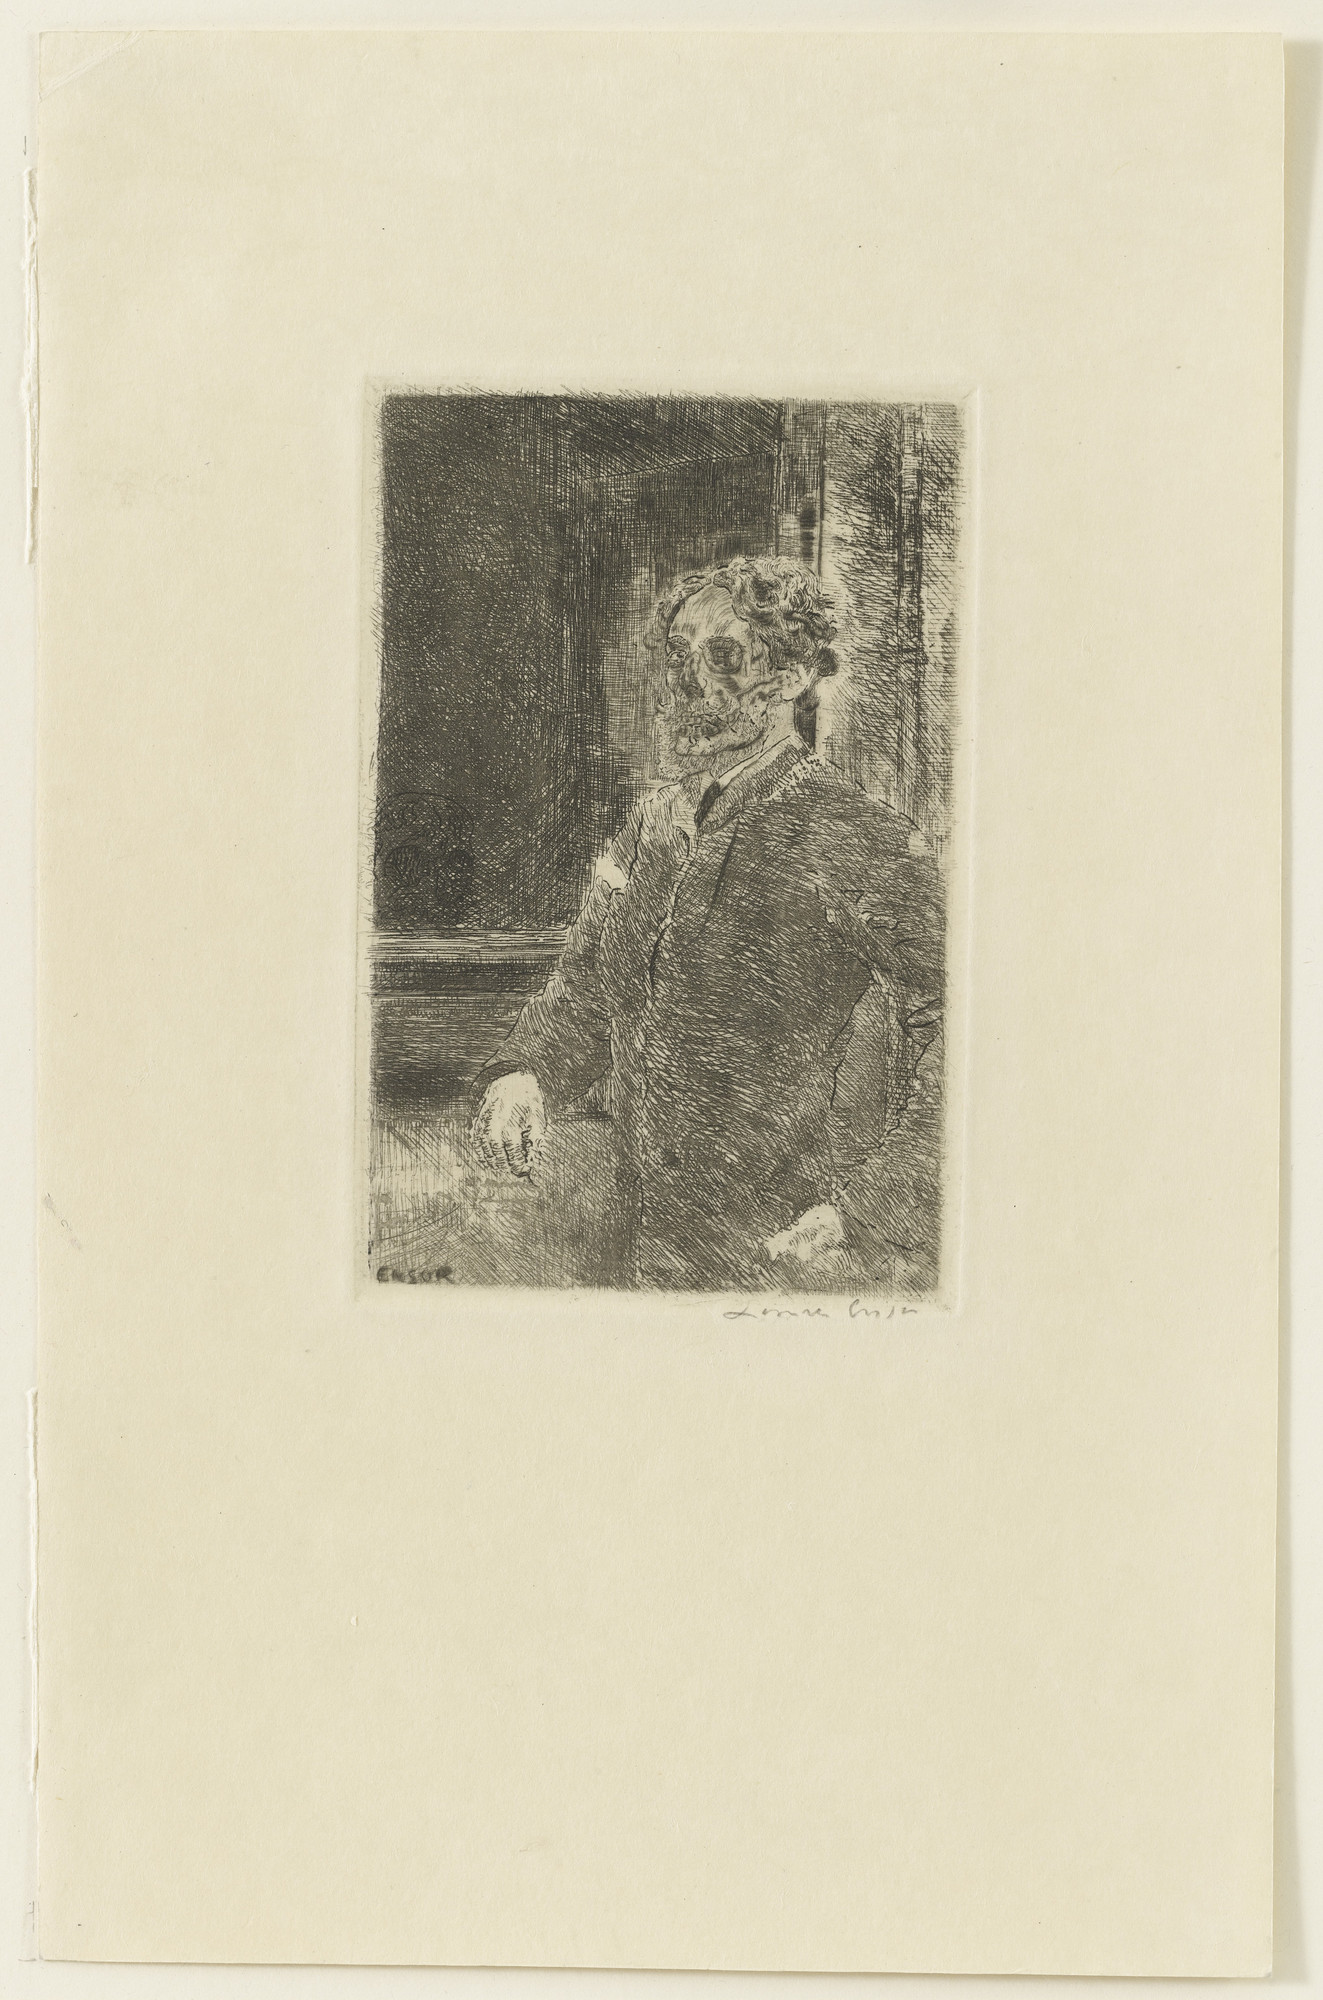 James Ensor. My Portrait as a Skeleton (Mon portrait squelettisé), state III. 1889